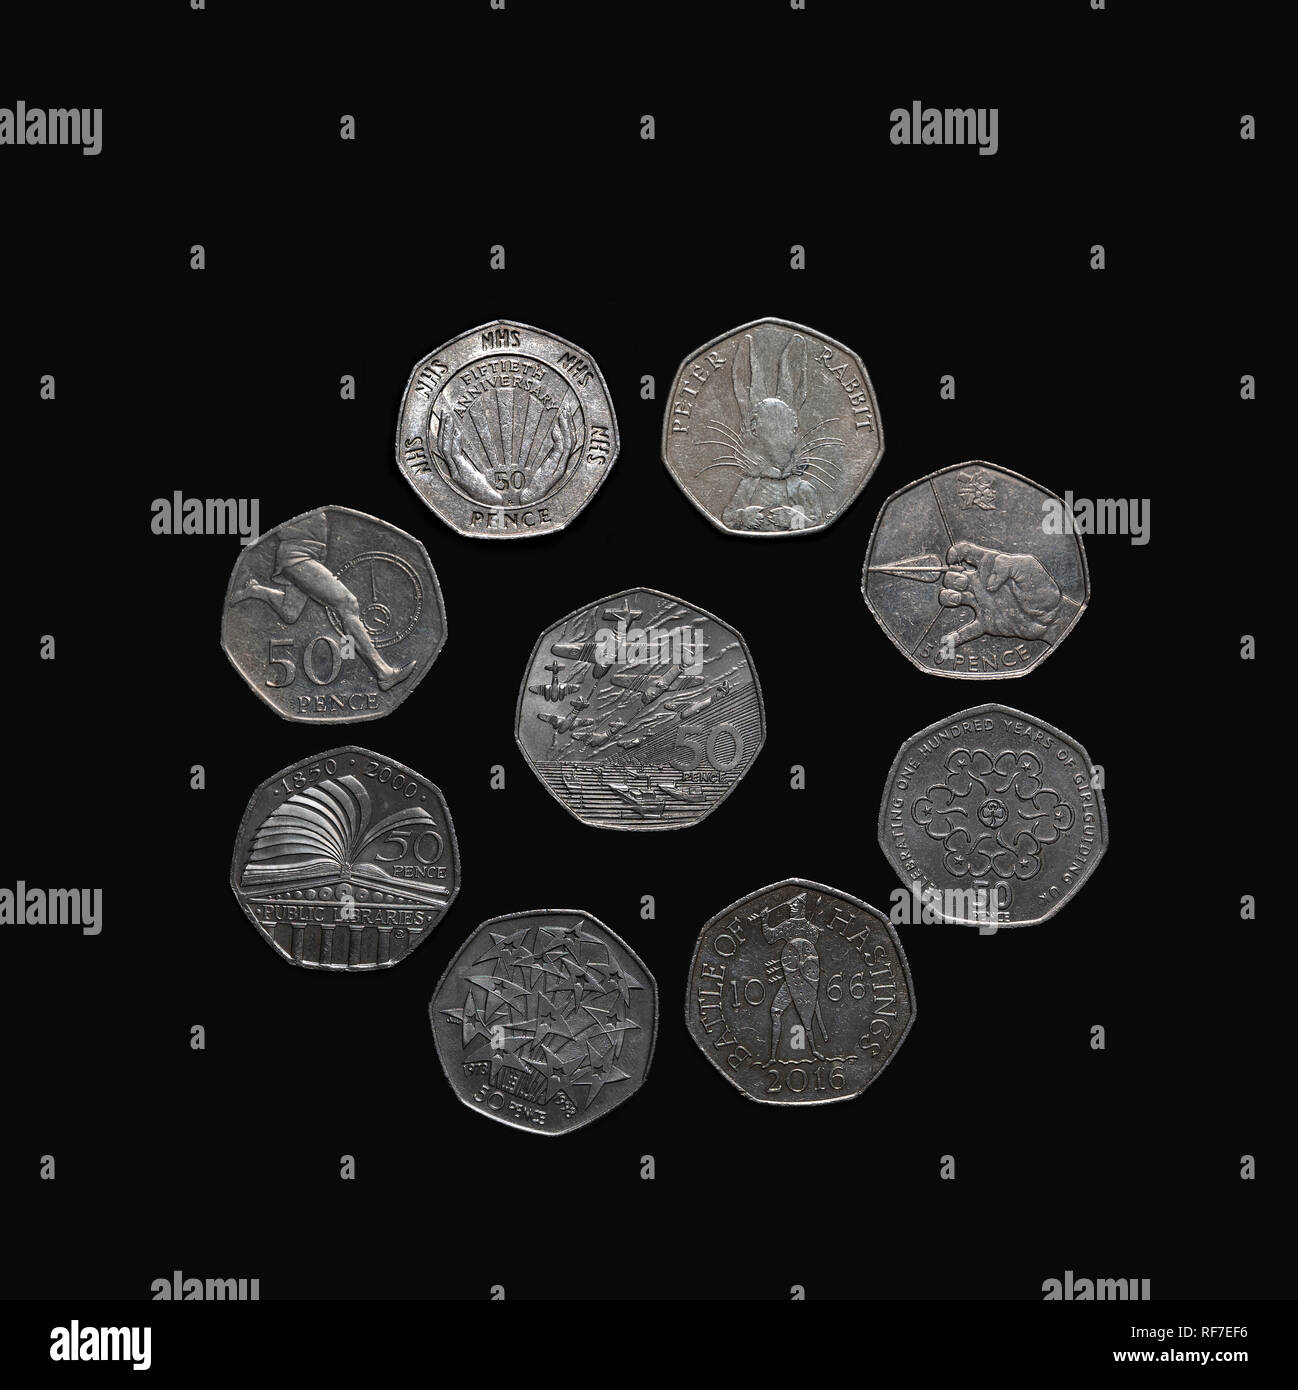 Collection of commemorative UK 50 pence coins. Stock Photo